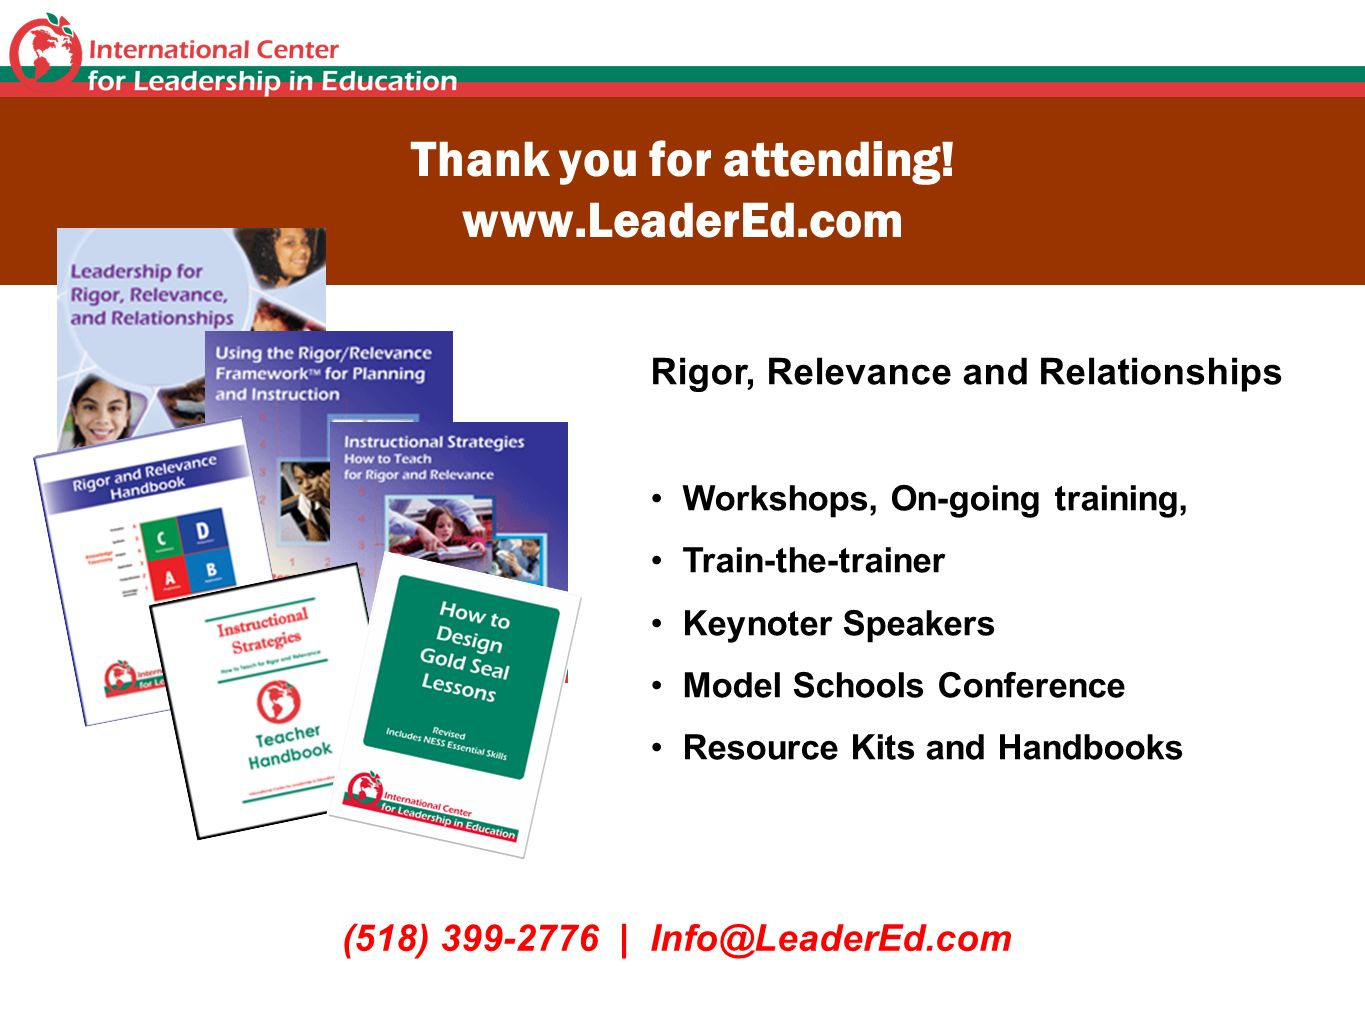 Thank you for attending! www.LeaderEd.com (518) 399-2776 | Info@LeaderEd.com Rigor, Relevance and Relationships Workshops, On-going training, Train-th